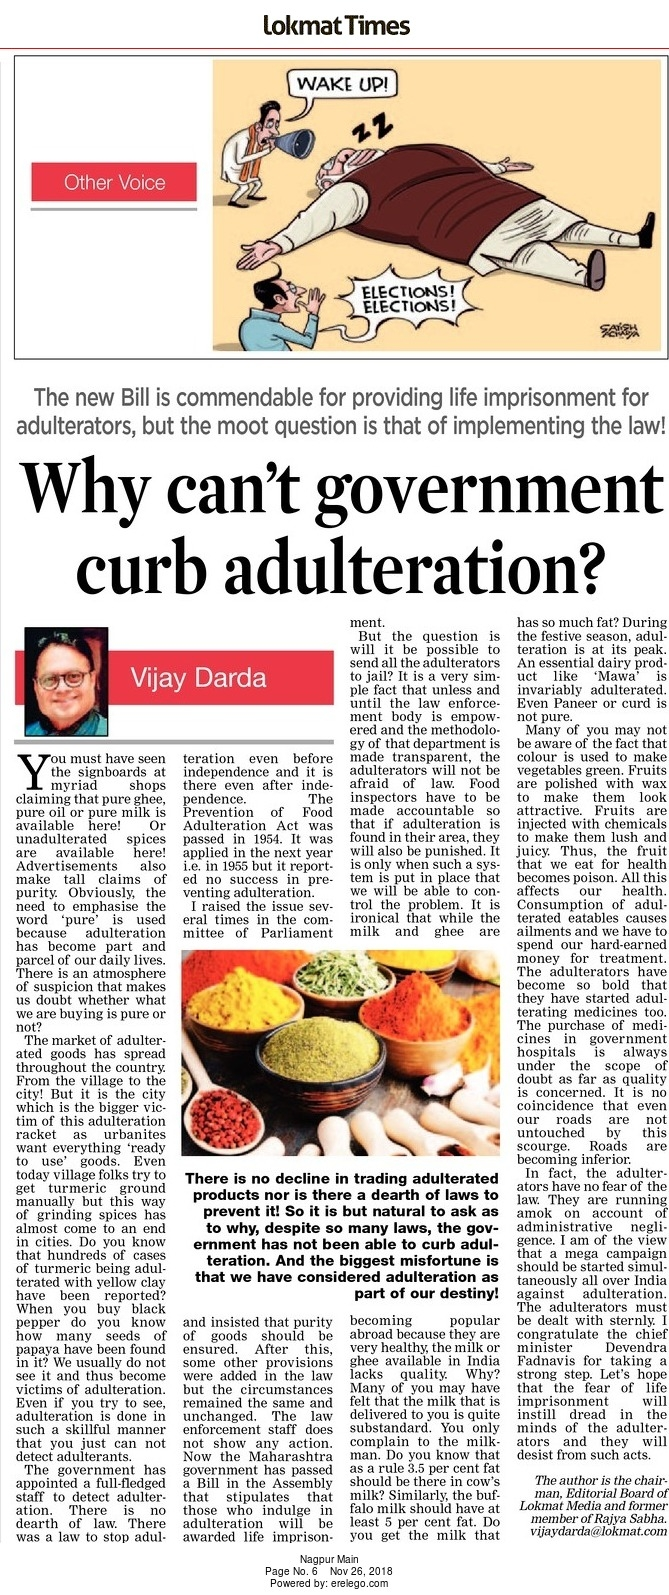 Why can't government curb adulteration?